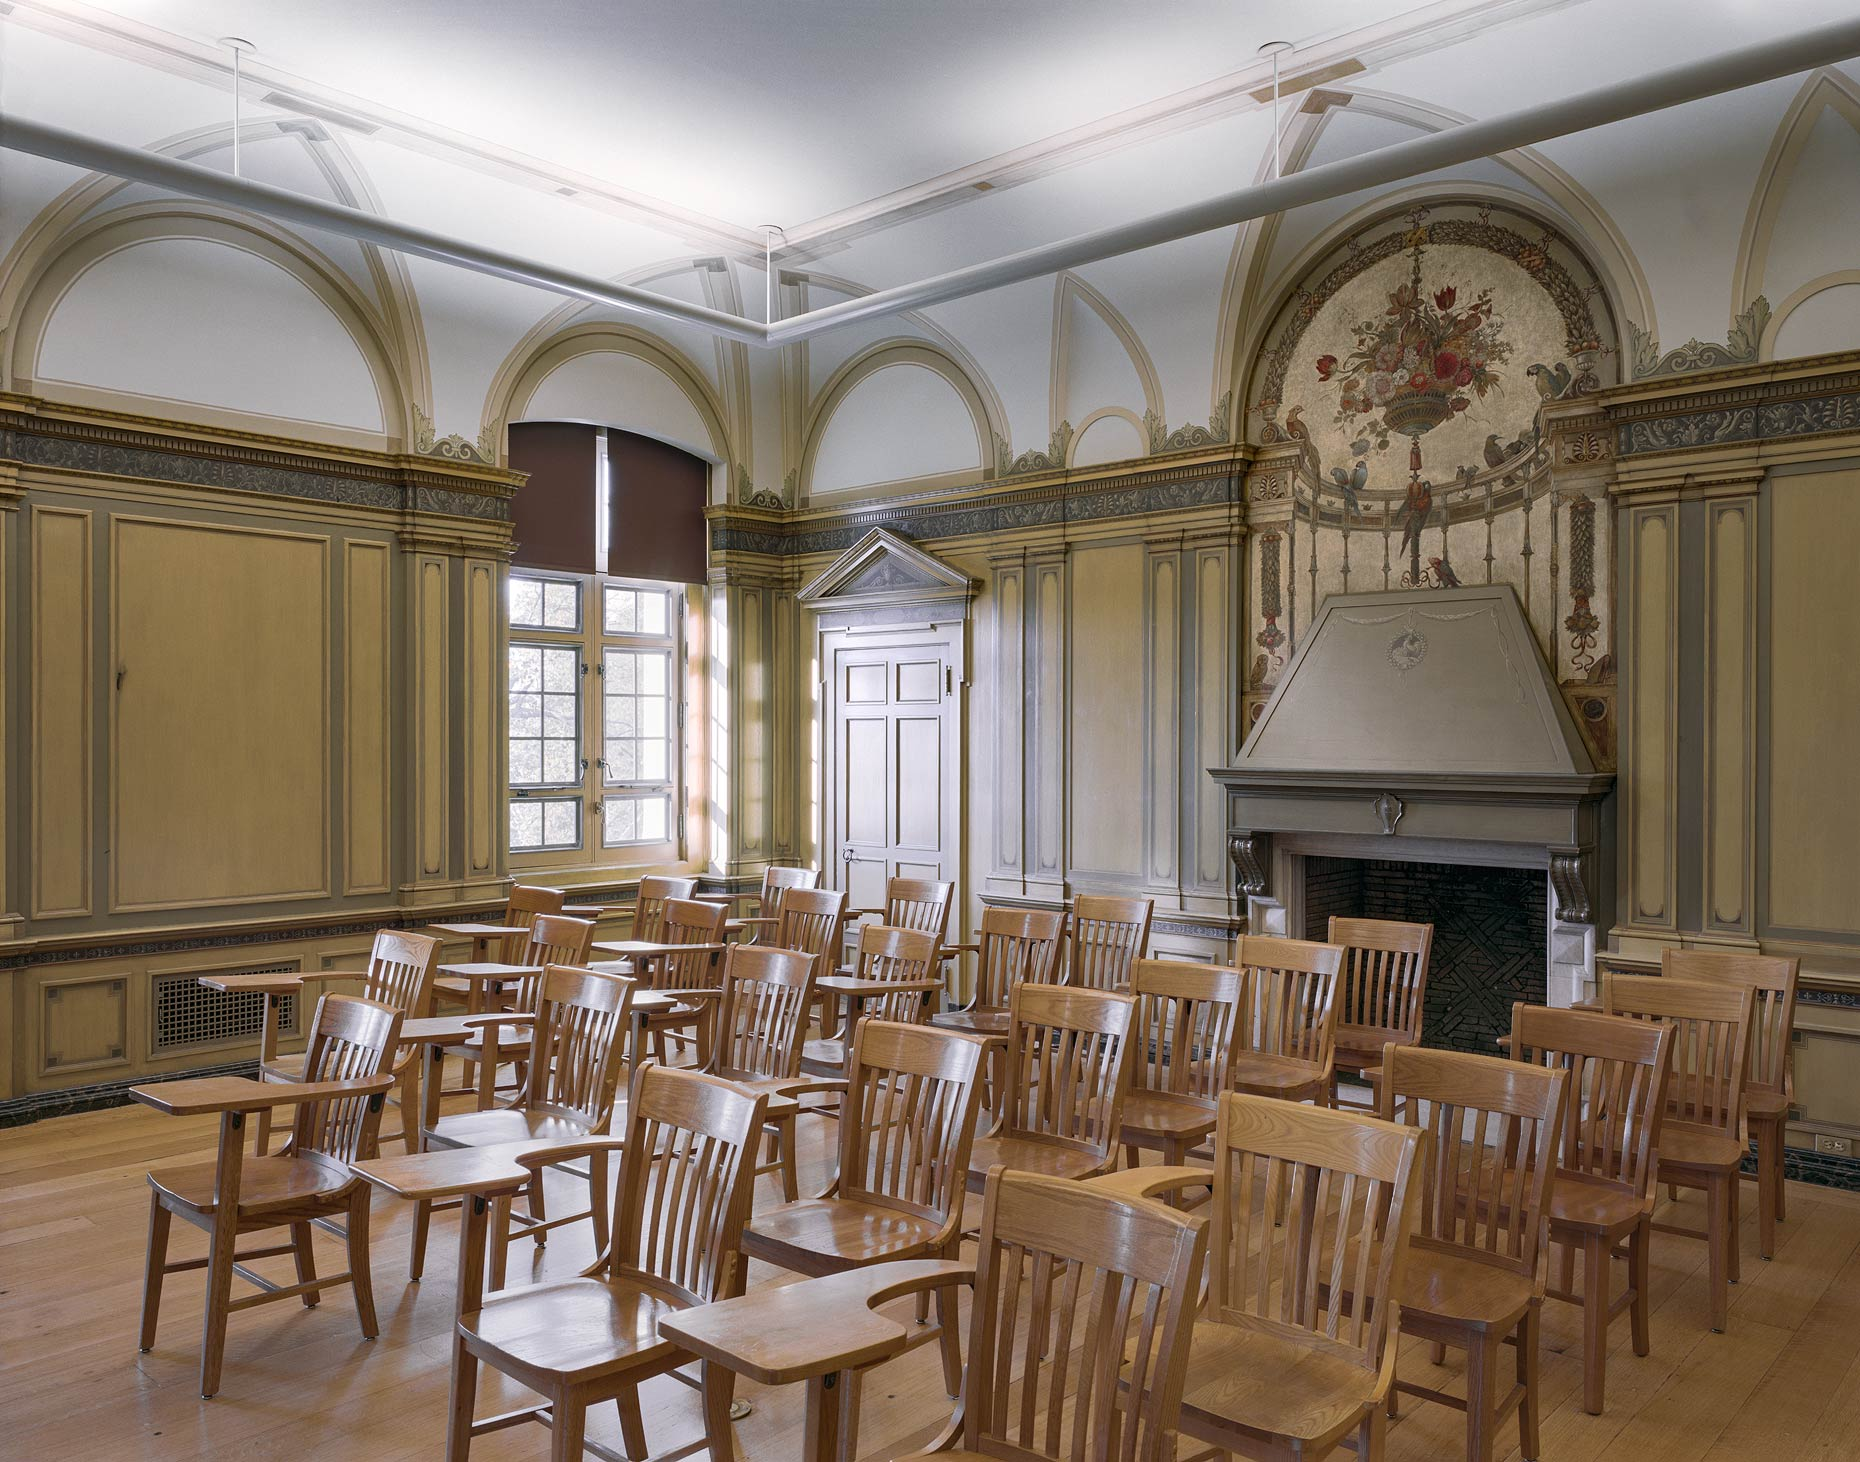 Classroom, Convent of the Sacred Heart, 1 East 91st Street, New York City, 2015